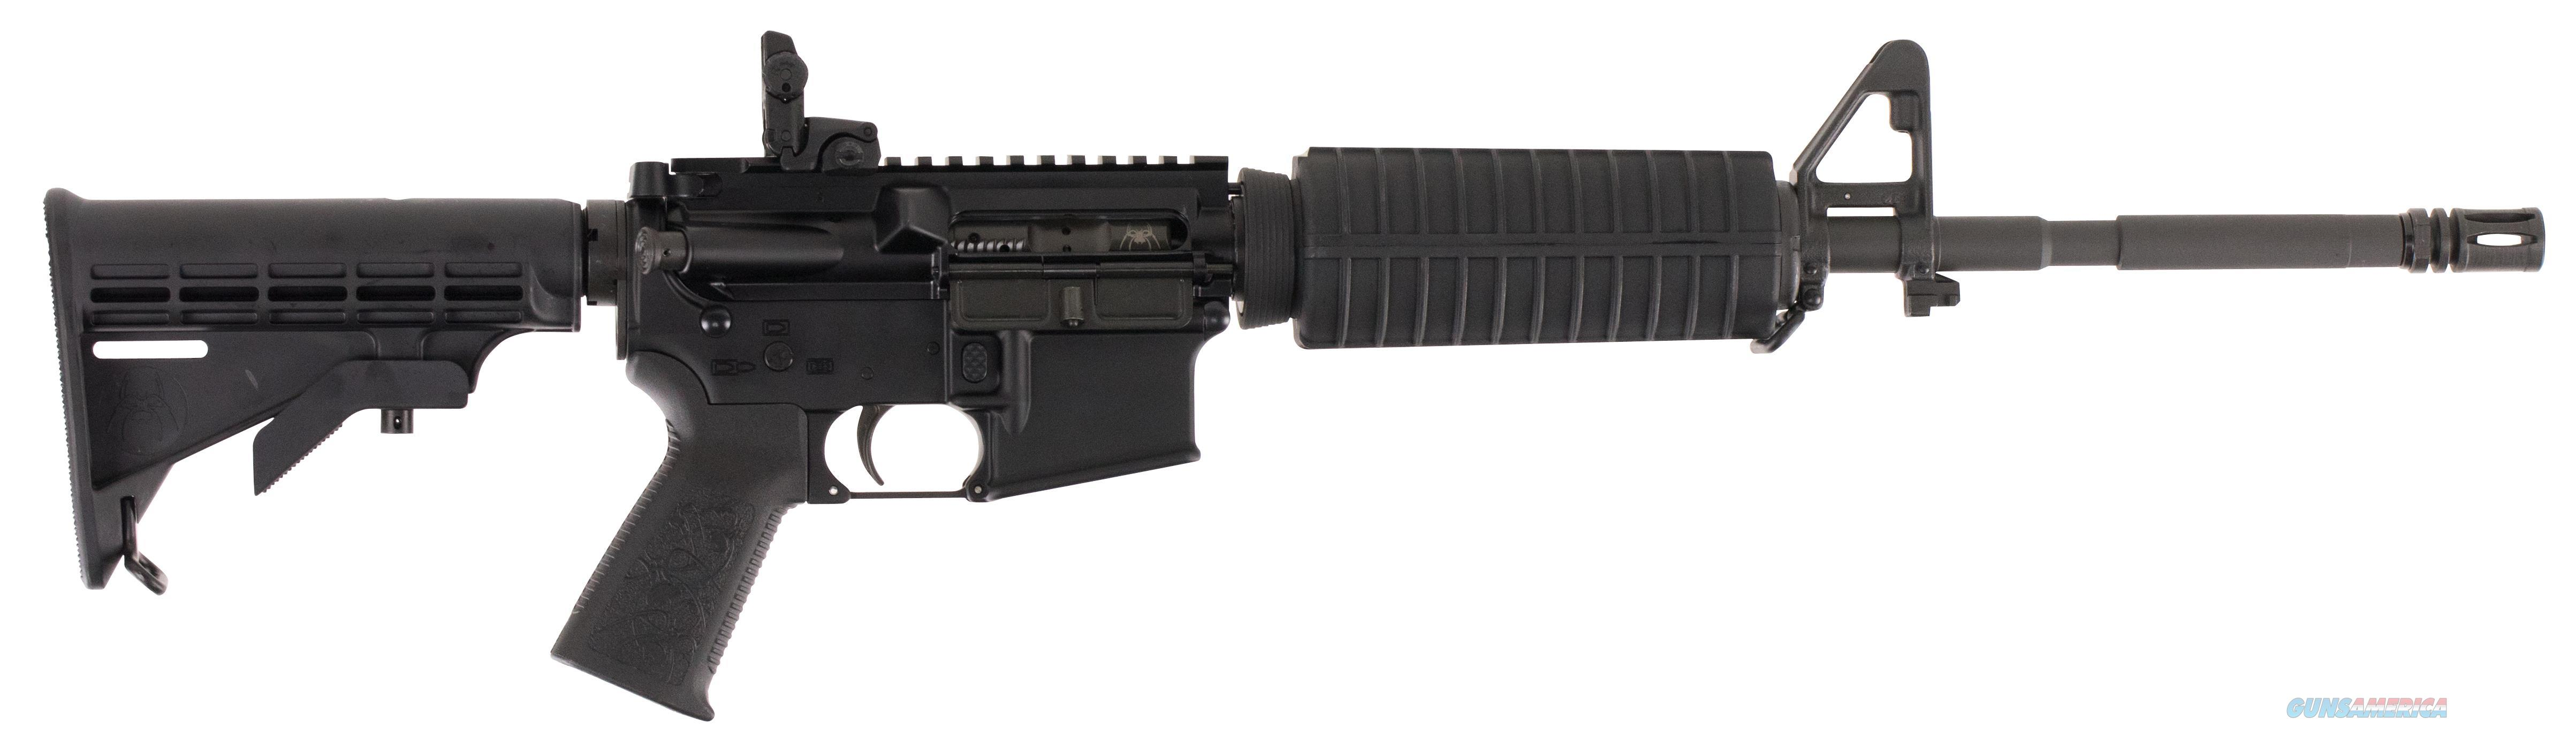 "Spikes Str5025m4s St-15 Le M4 Carbine With 12"" Bar2 Rail Semi-Automatic 223 Remington/5.56 Nato 16"" No Magazine 6-Position Black Stk Black Hard Coat Anodized STR5025-M4S  Guns > Rifles > S Misc Rifles"